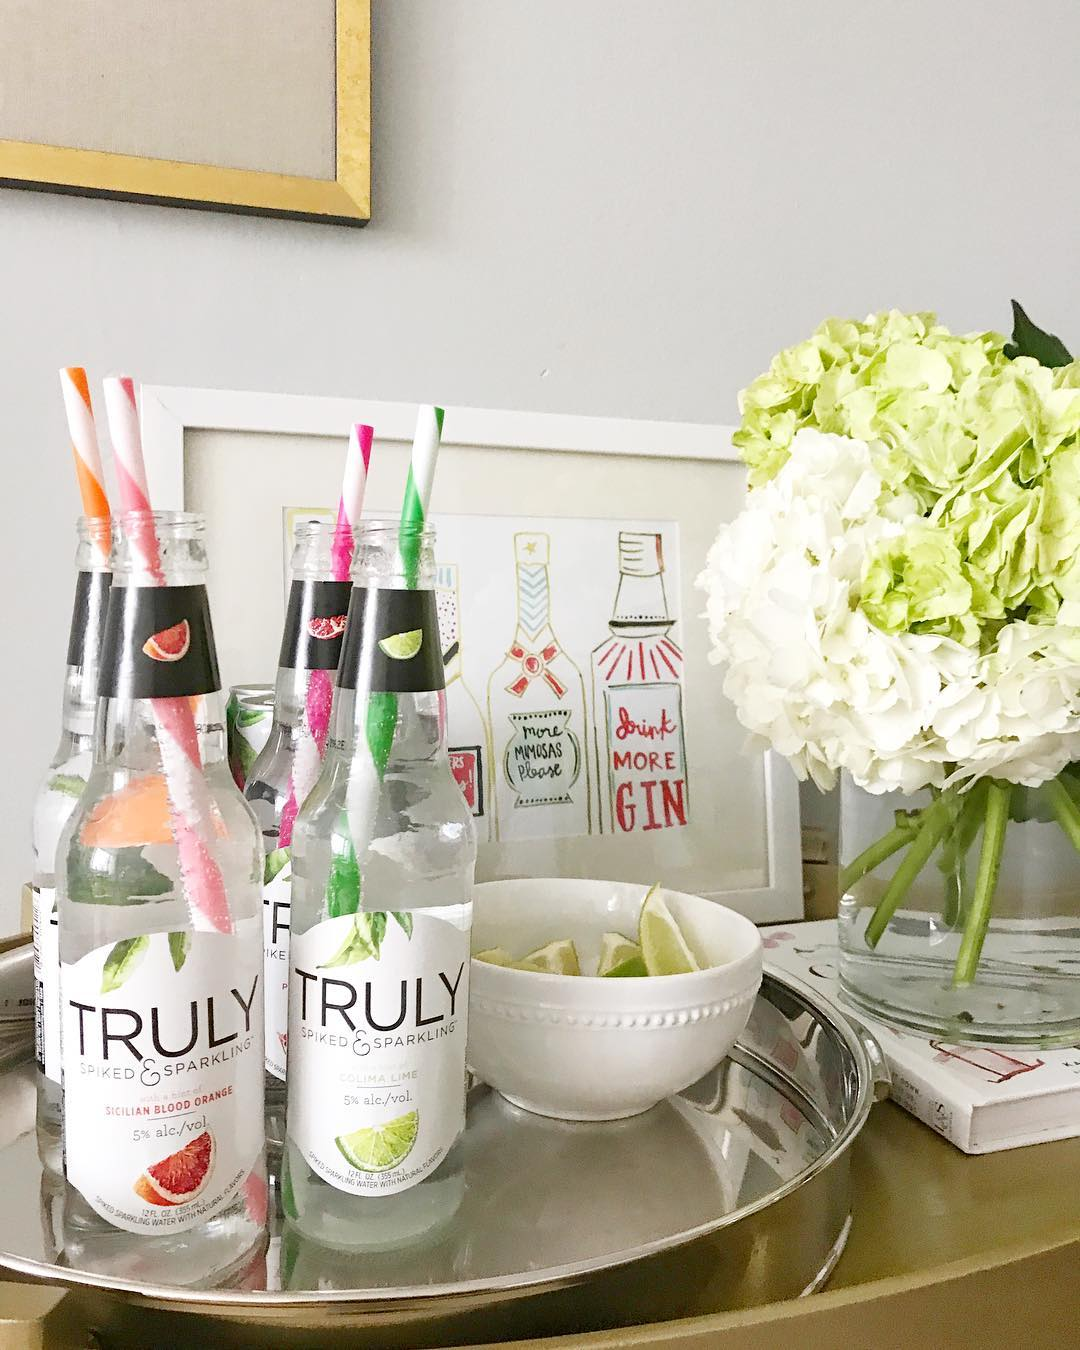 Extending my birthday celebrations with trulysparkling this week! Its thehellip